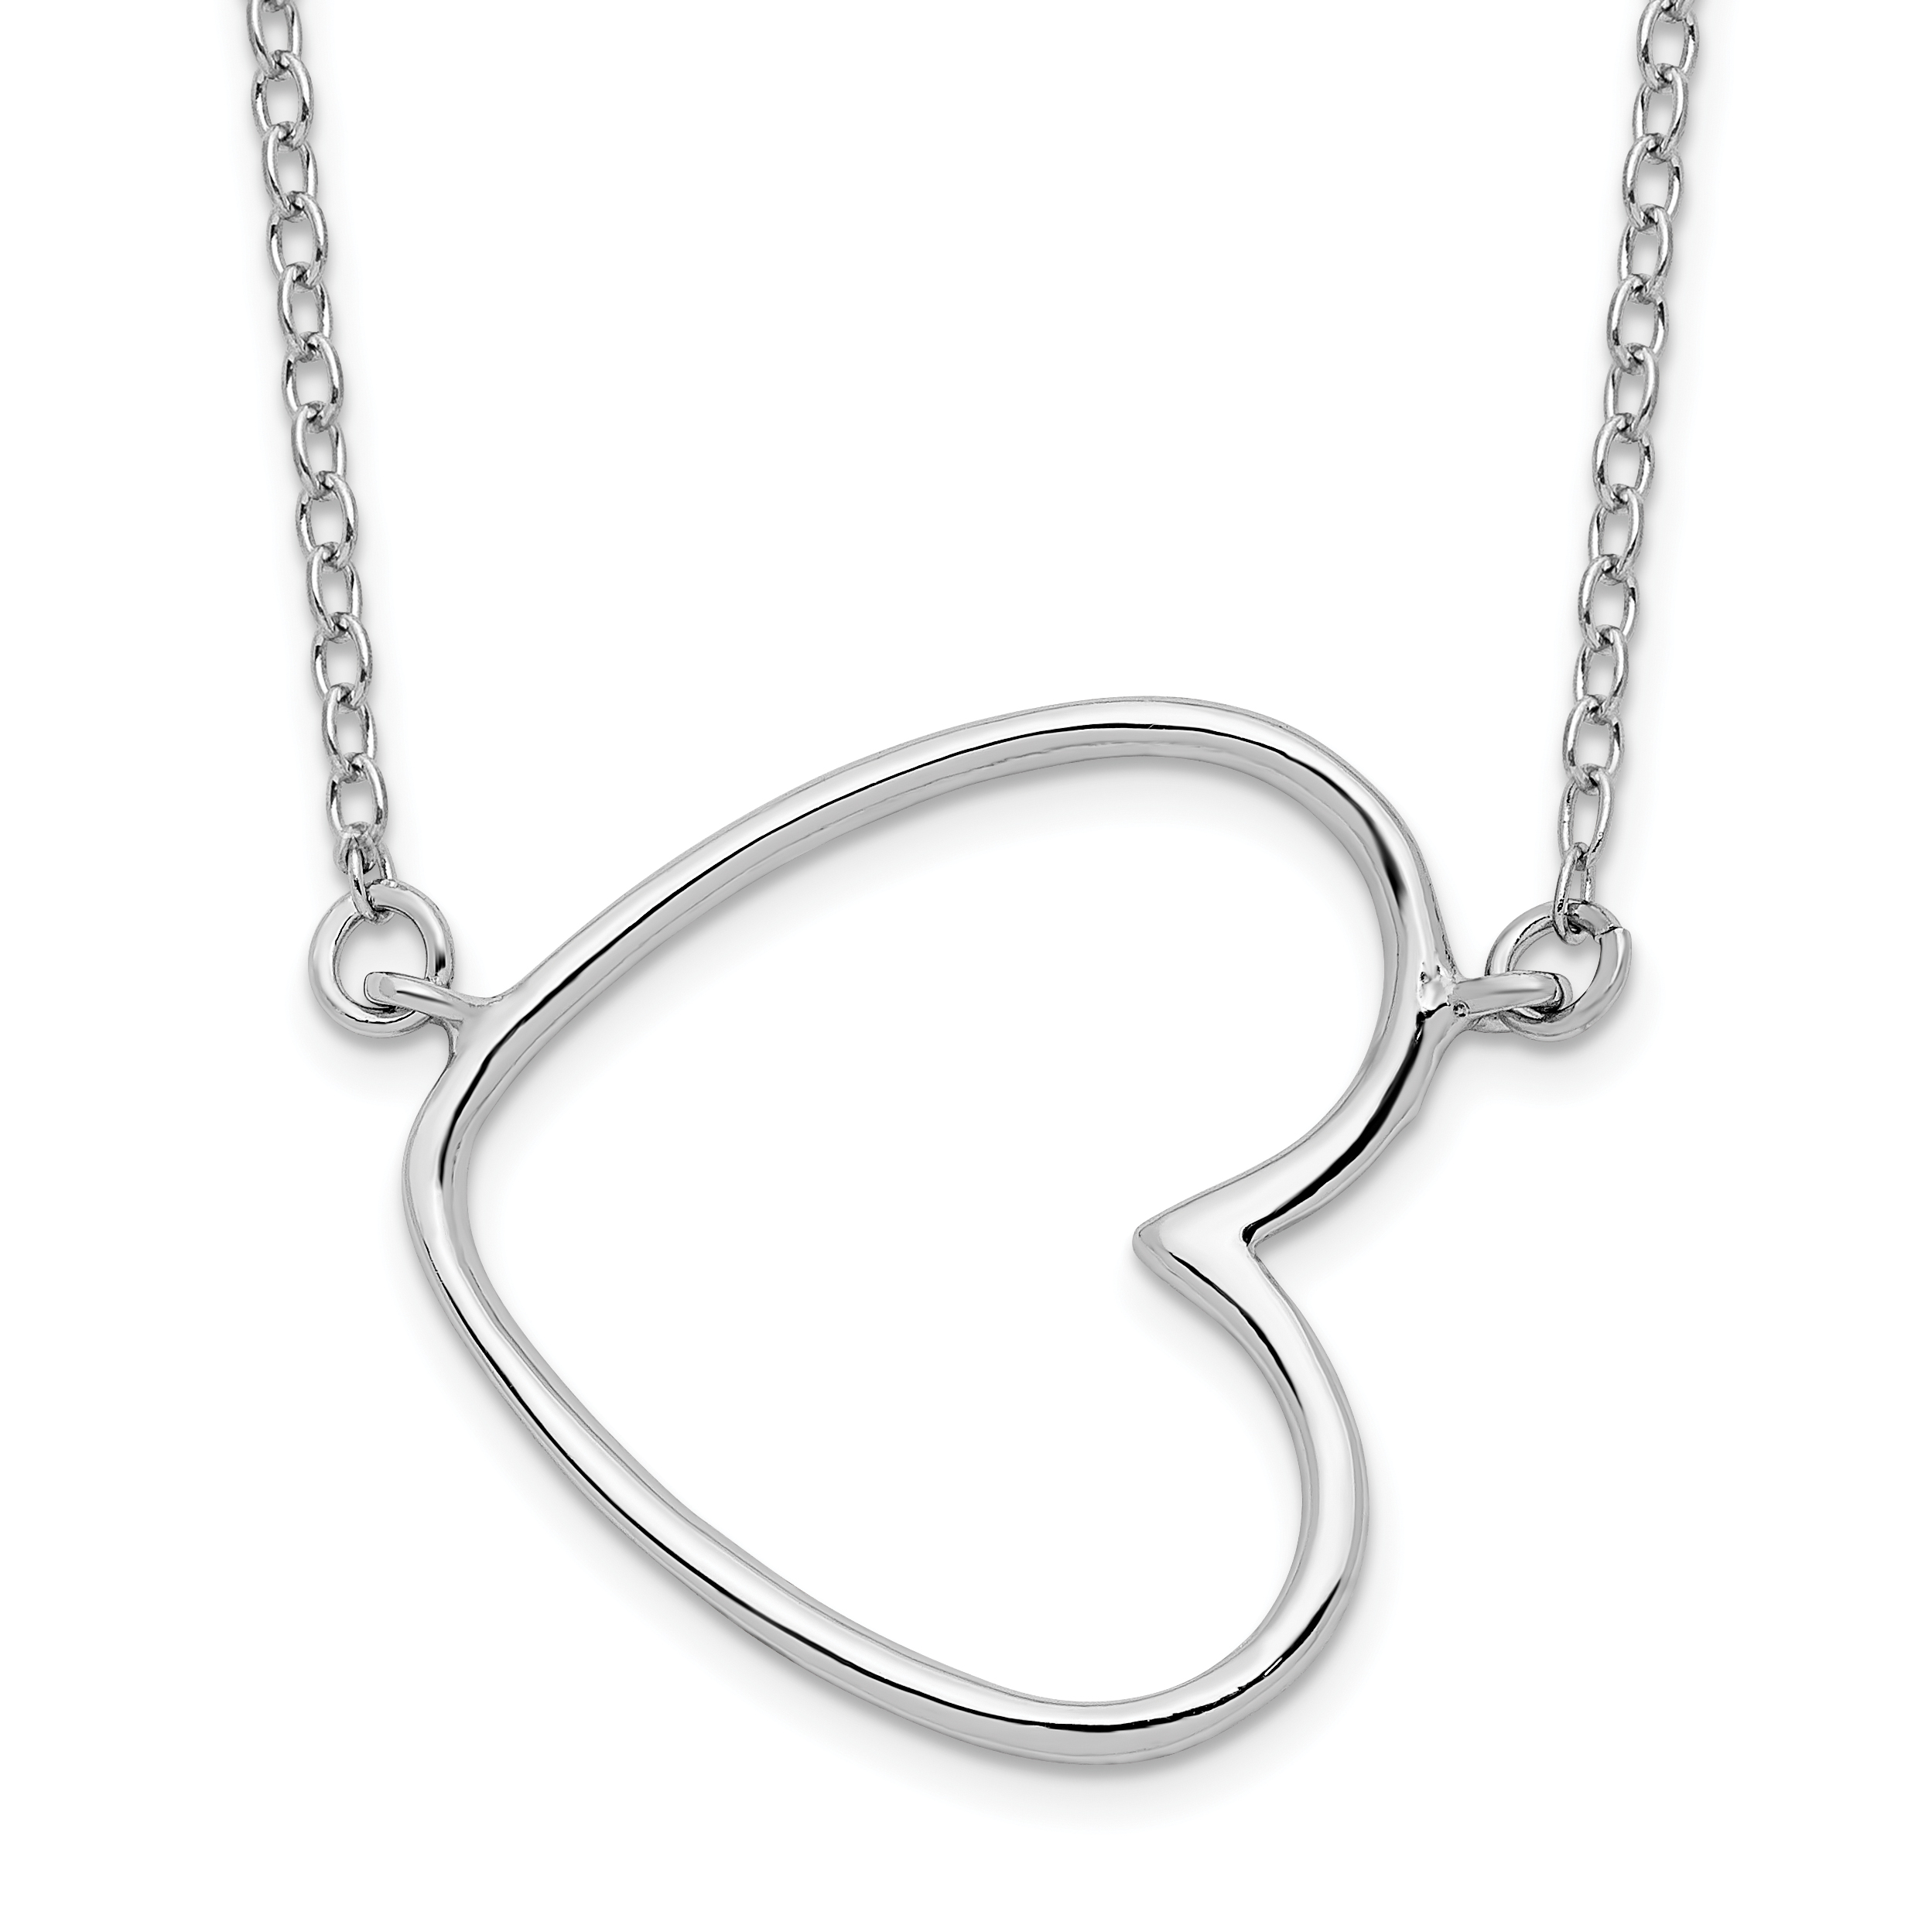 Sterling Silver Rhodium-plated 18in Heart Necklace   Weight: 1.21 grams, Length: 16mm, Width: 1.14mm